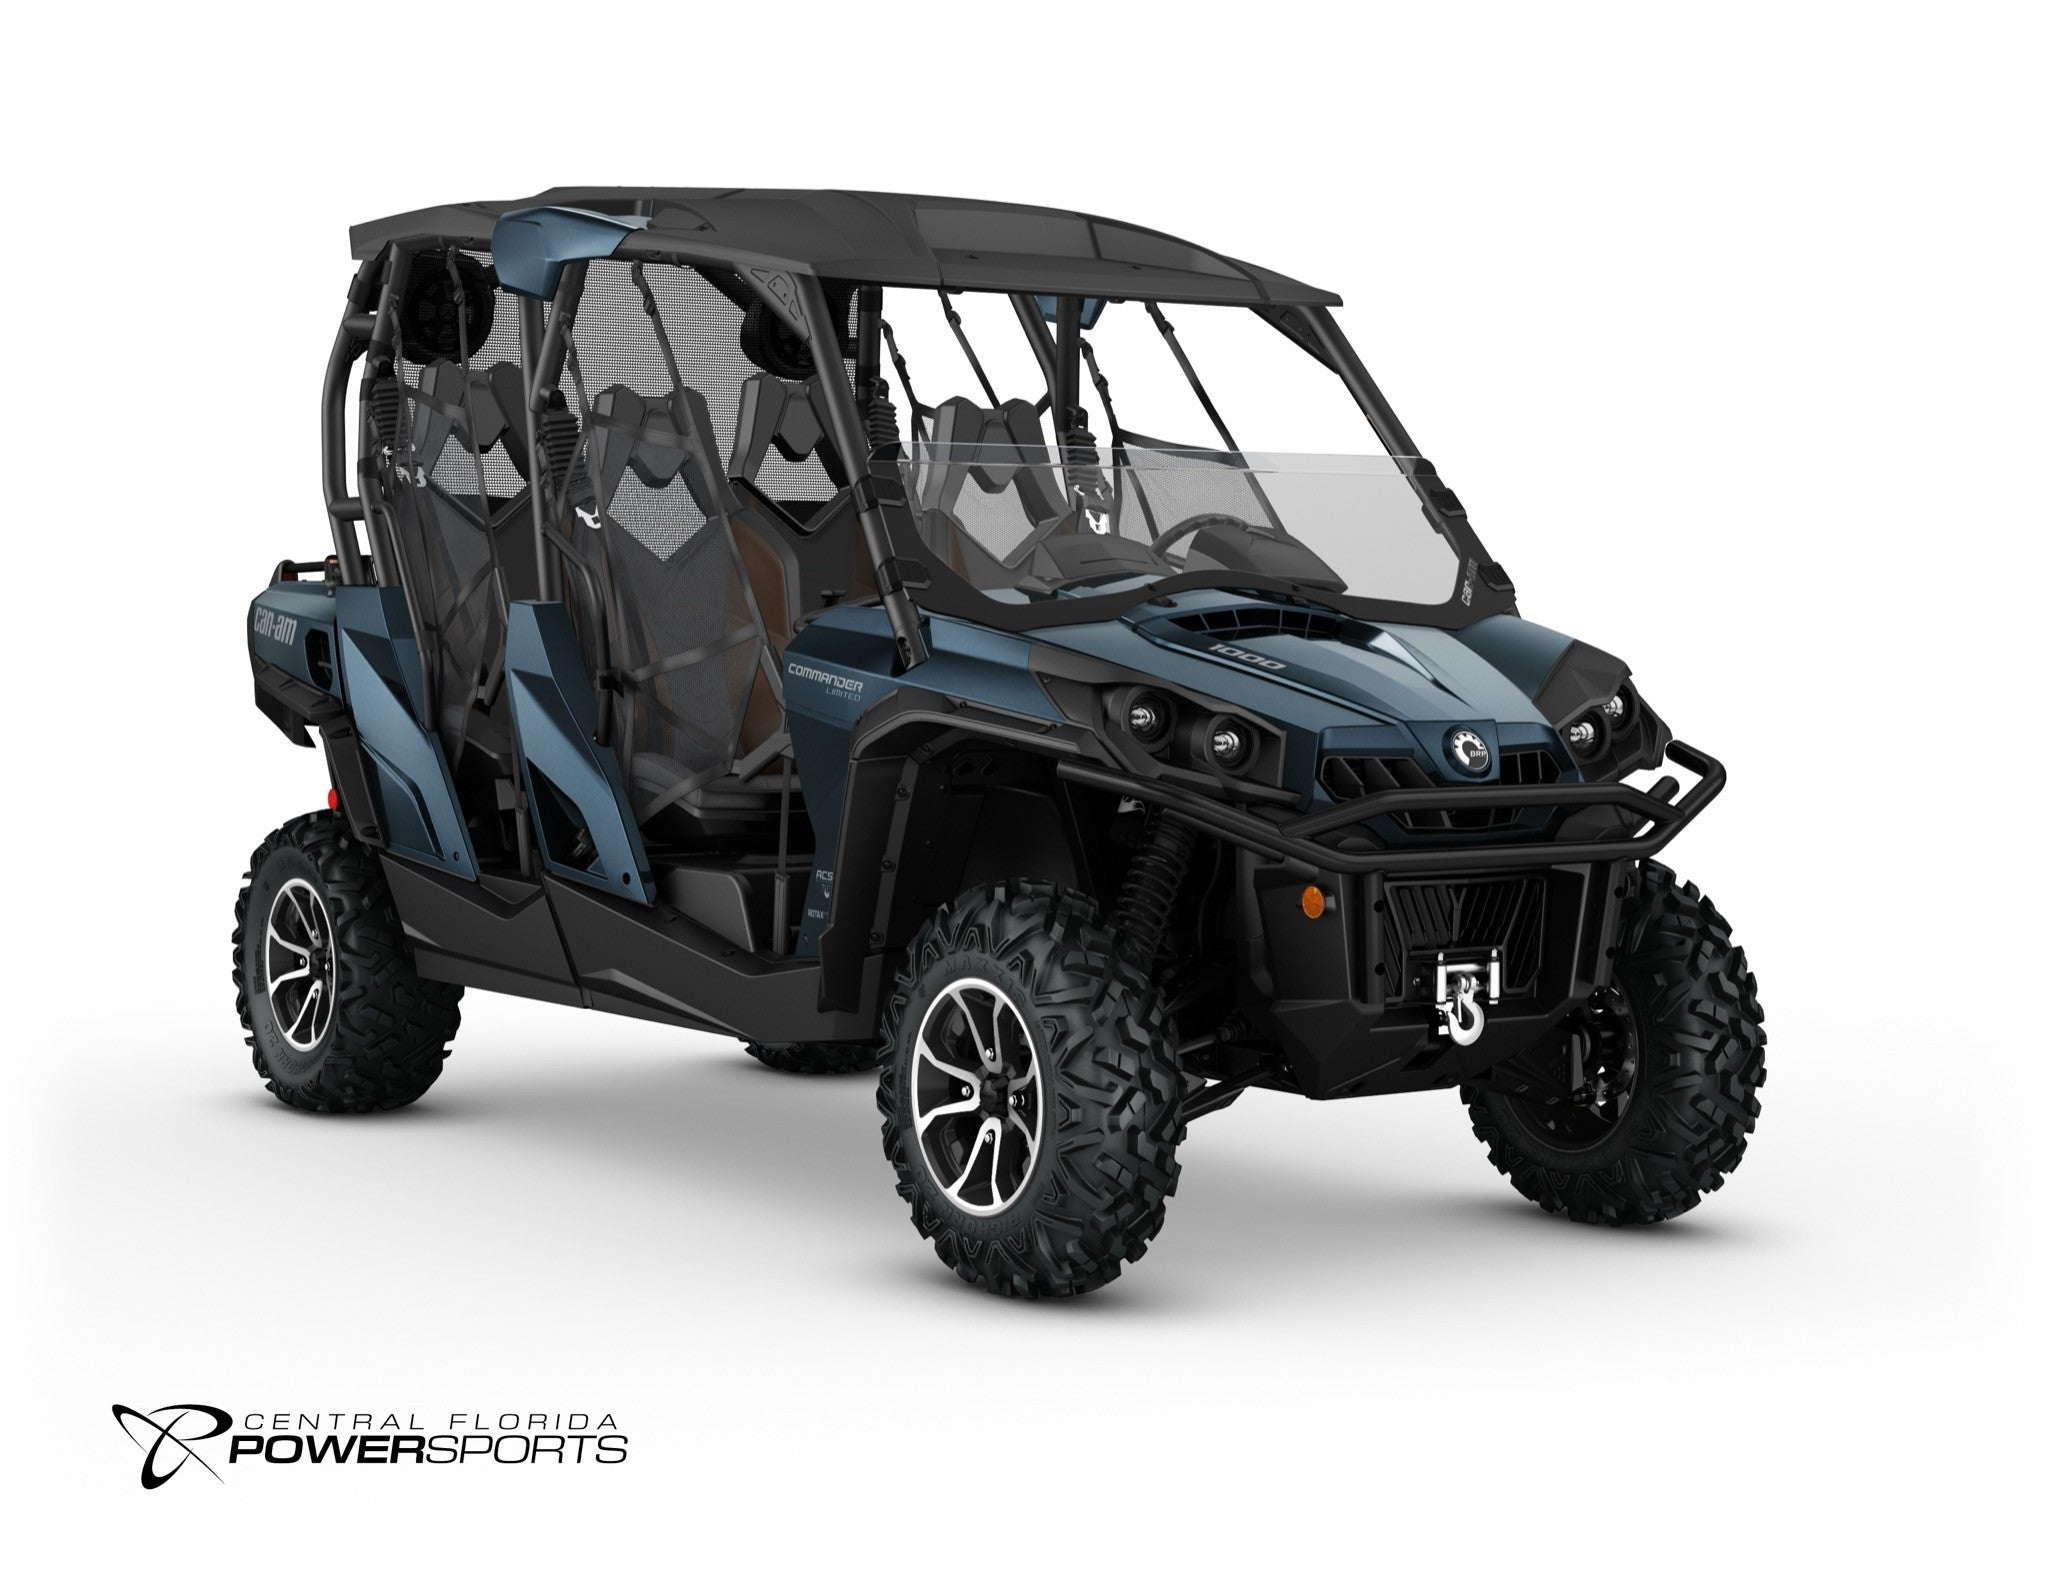 Can am commander 1000 limited 2016 for sale - 2017 Can Am Commander Max Limited Utv For Sale Central Florida Powersports